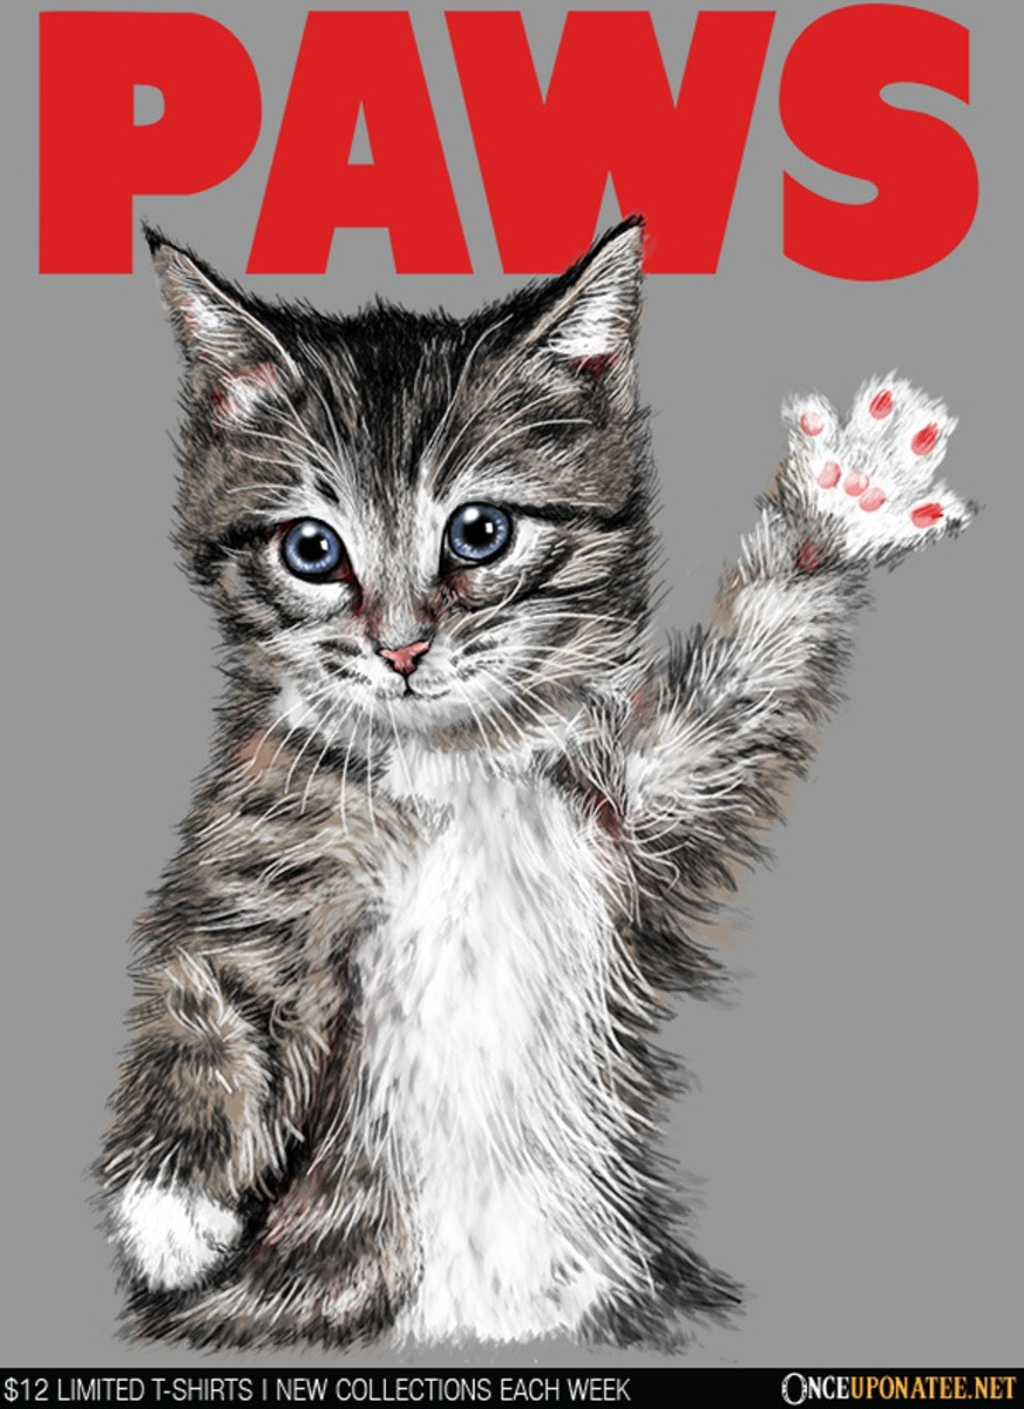 Once Upon a Tee: Paws